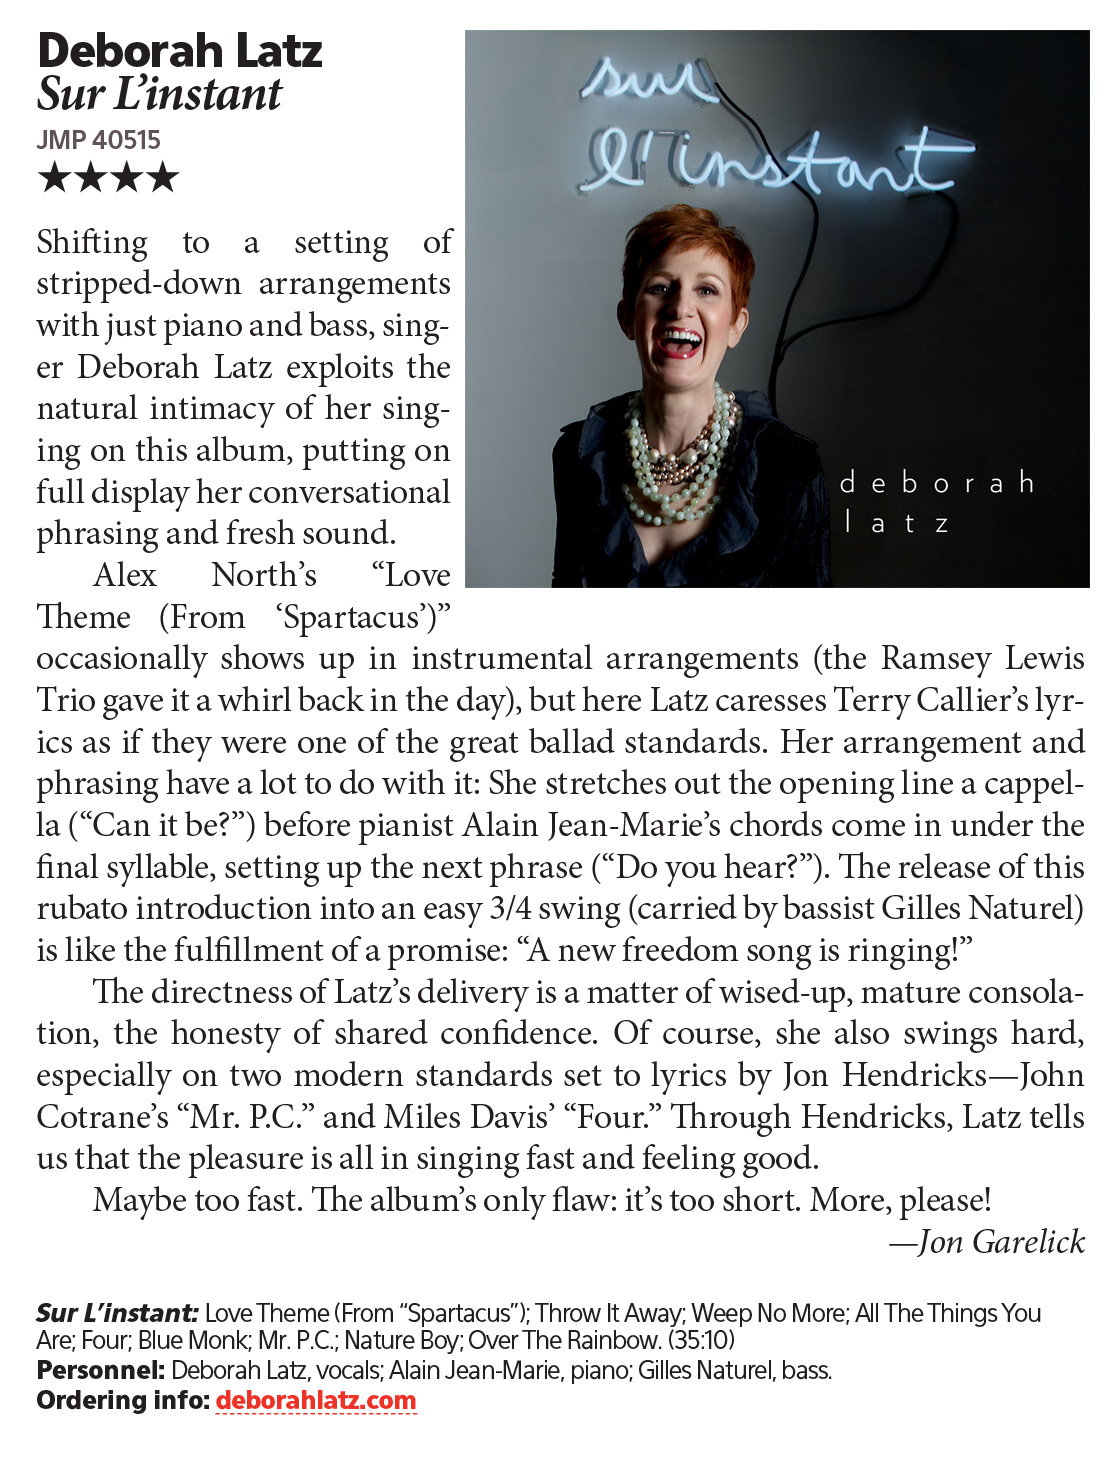 DOWNBEAT MAGAZINE REVIEW, 4 STARS - OCTOBER 2015 ISSUE